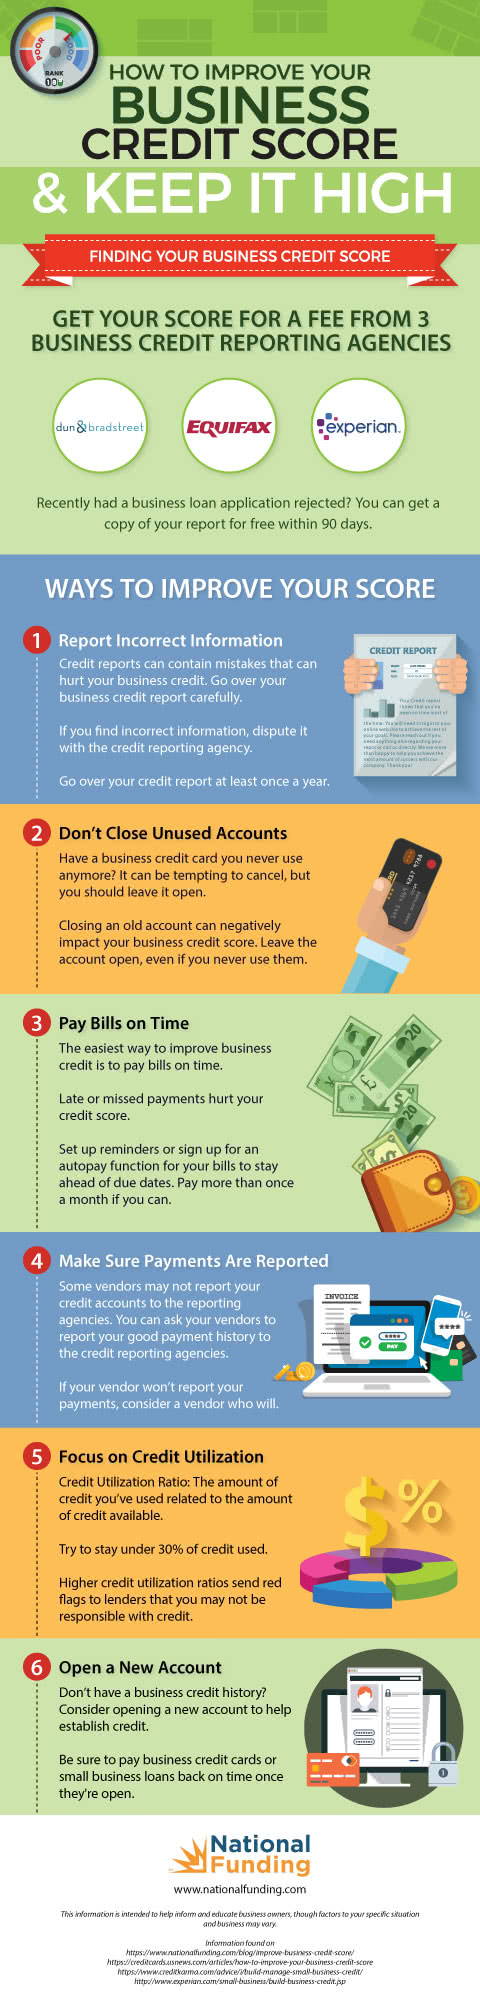 improve your business credit score infographic